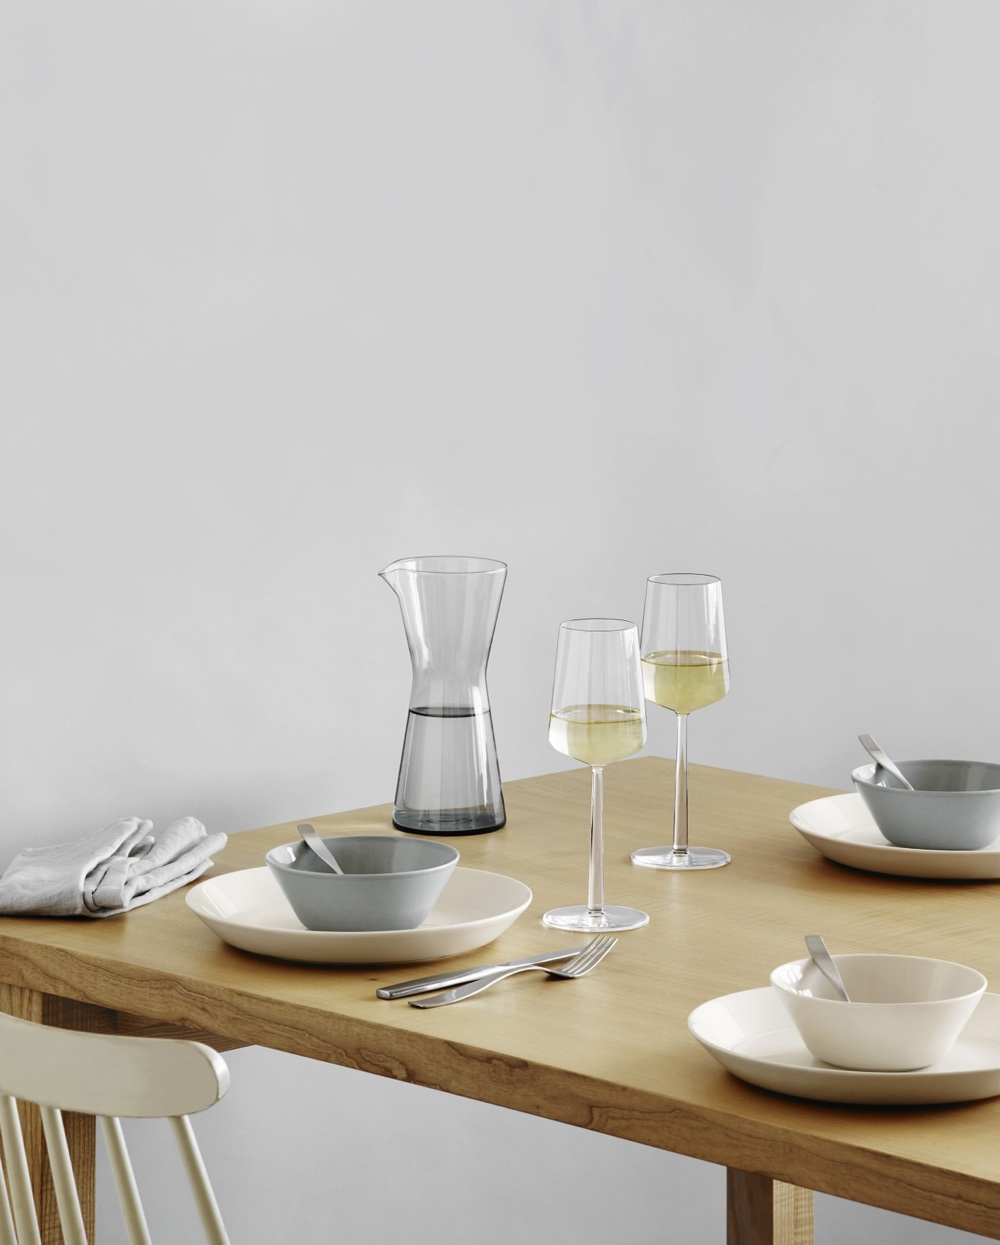 Teema and Kartio with Essence white wine glasses